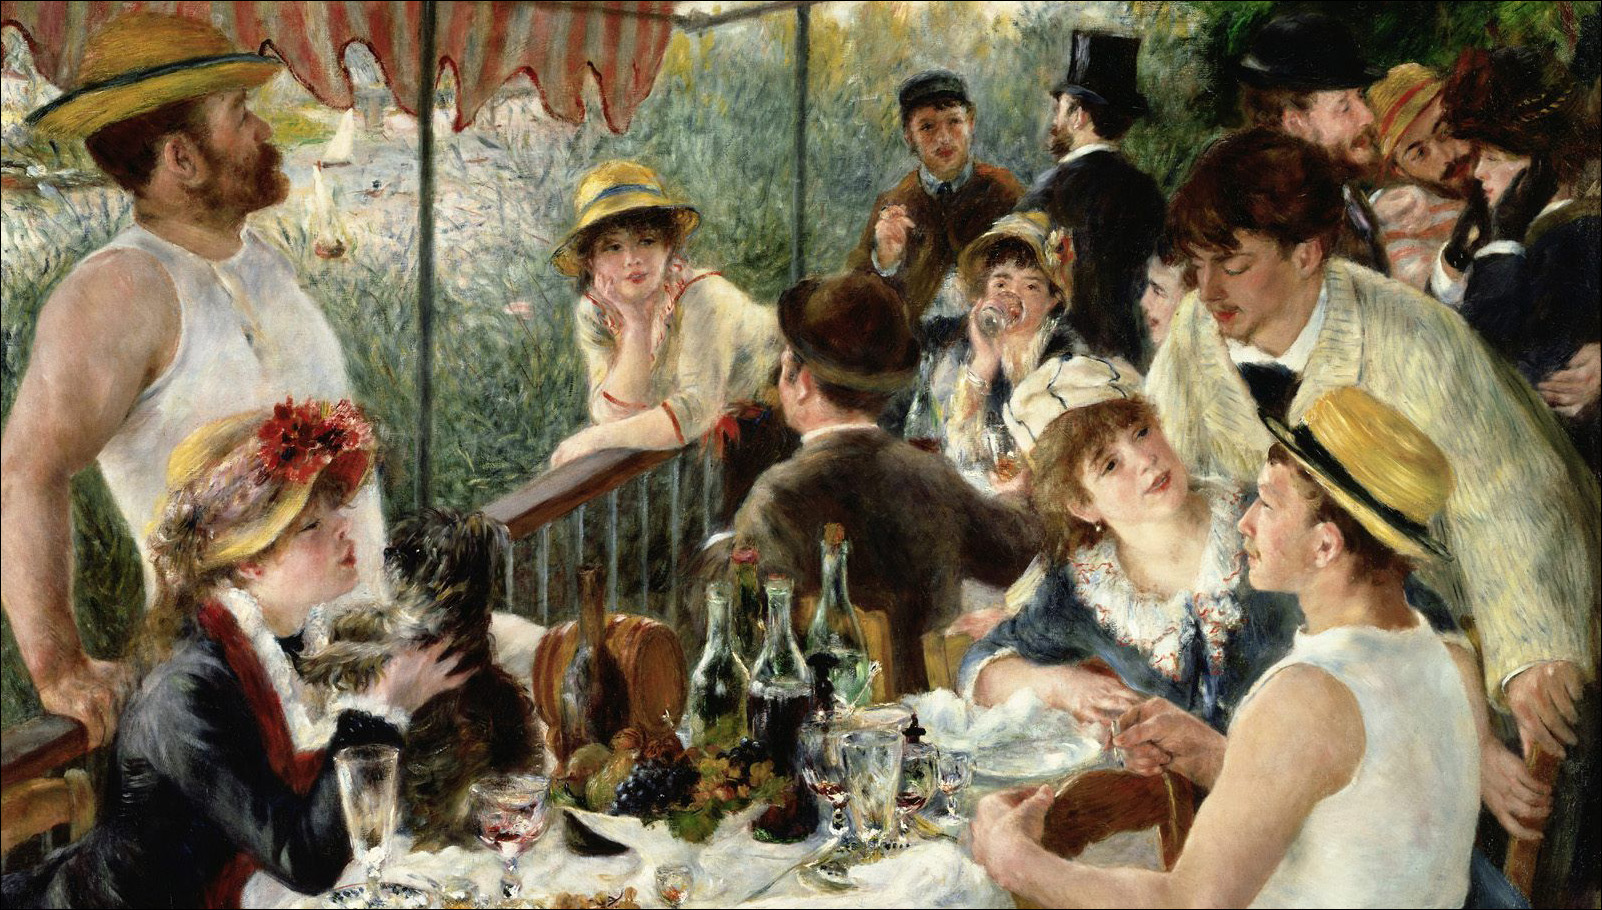 Renoir (Luncheon of the Boating Party)